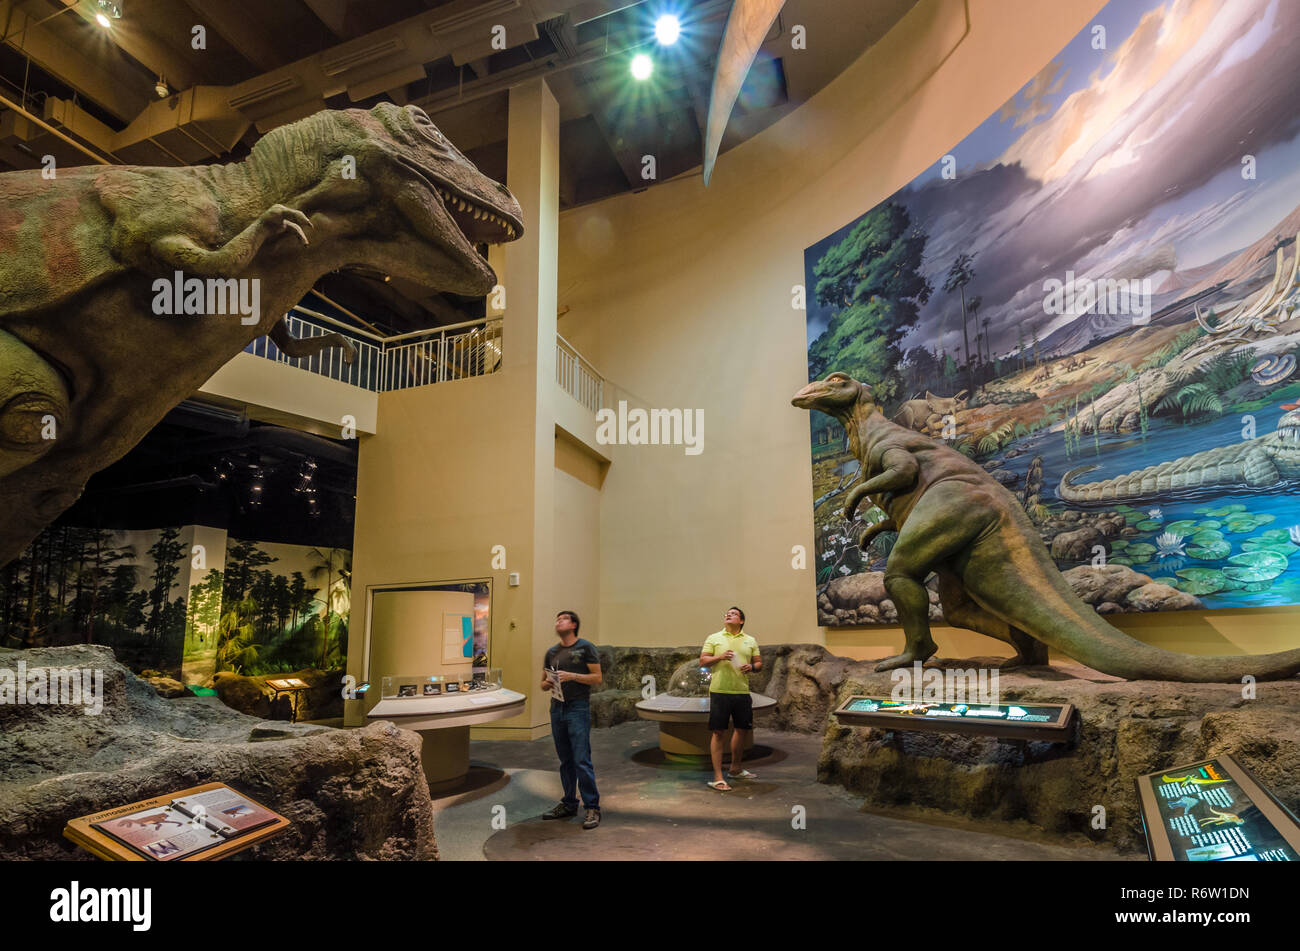 Vladimir Salgado and David Brado look at a dinosaur that is displayed at Fernbank Museum of Natural History in Atlanta, Georgia. - Stock Image